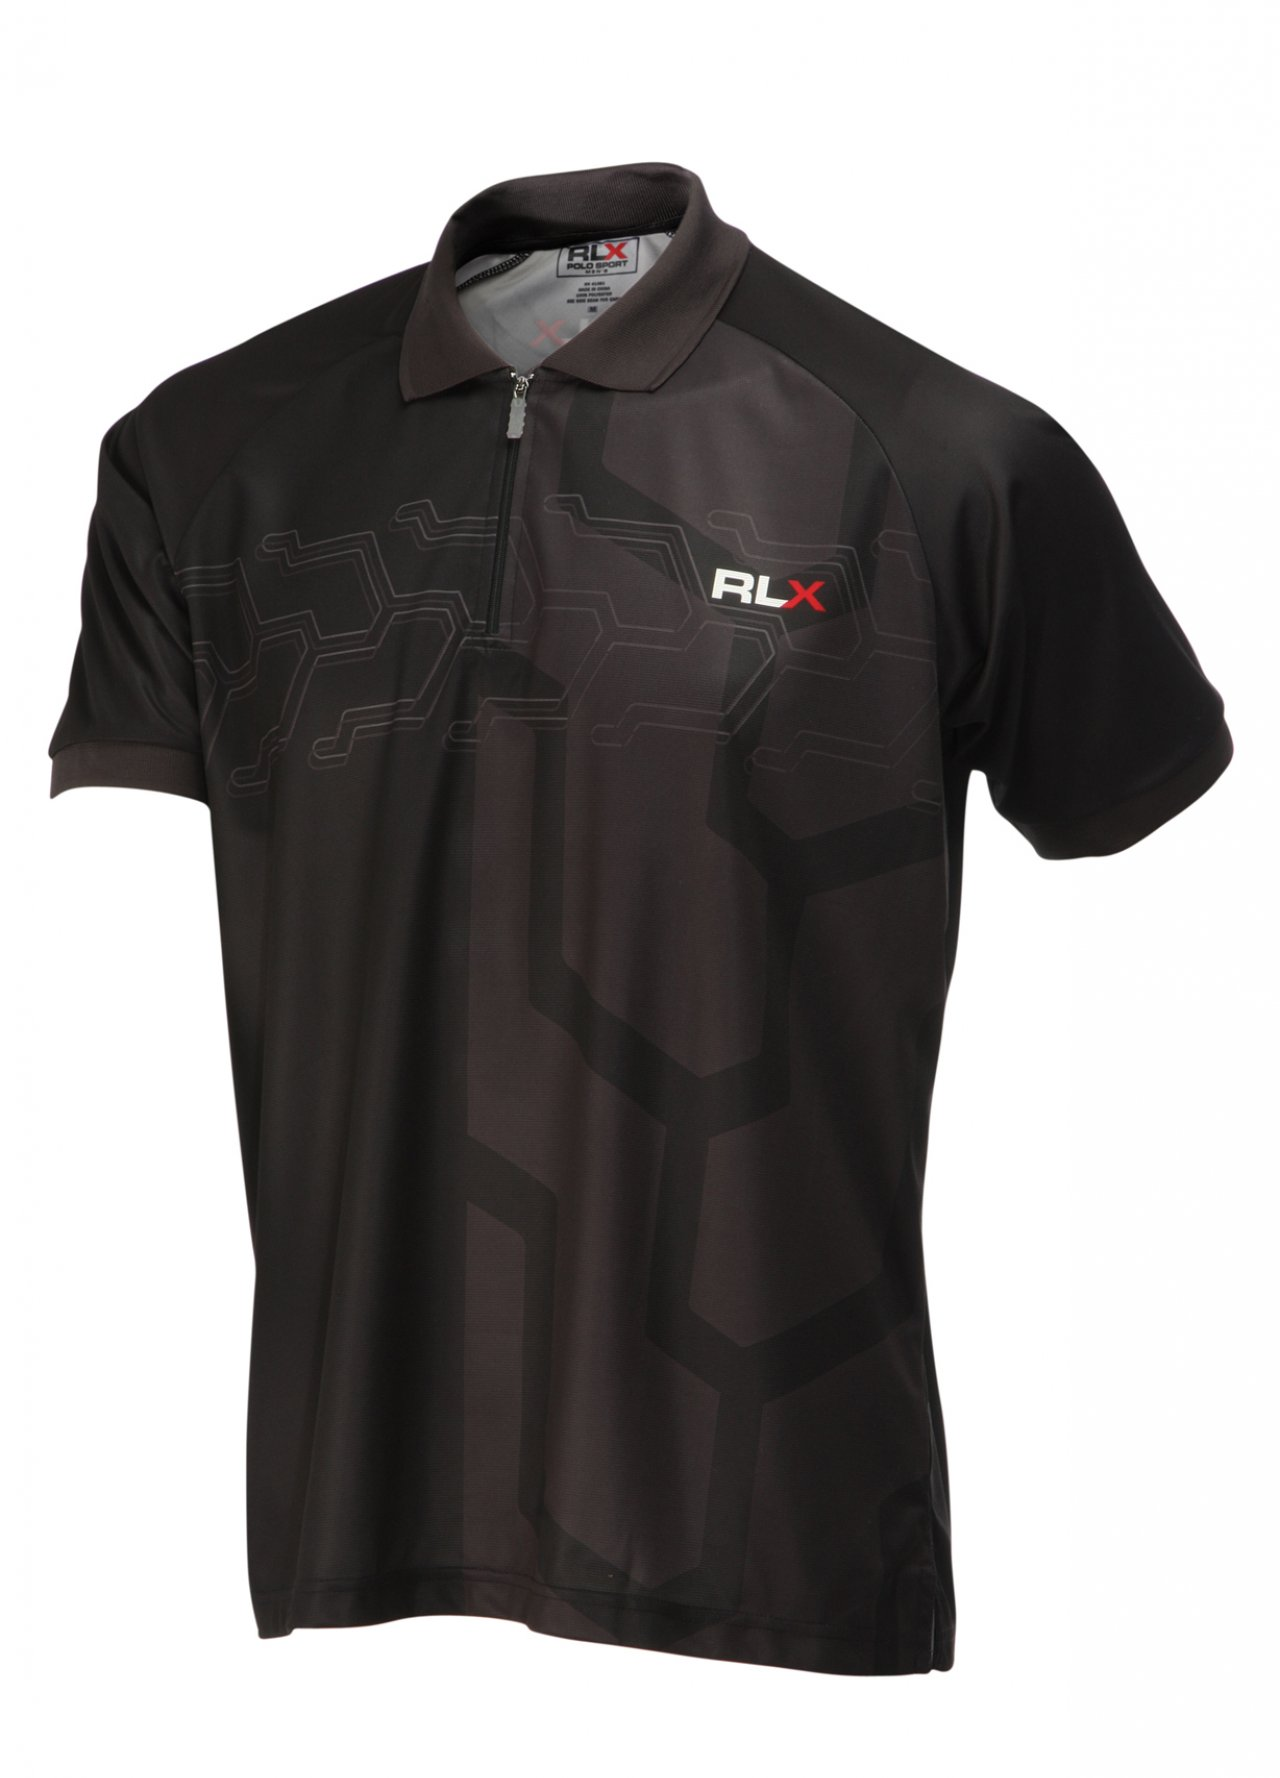 Ralph Lauren Rlx Golf Shirts ...